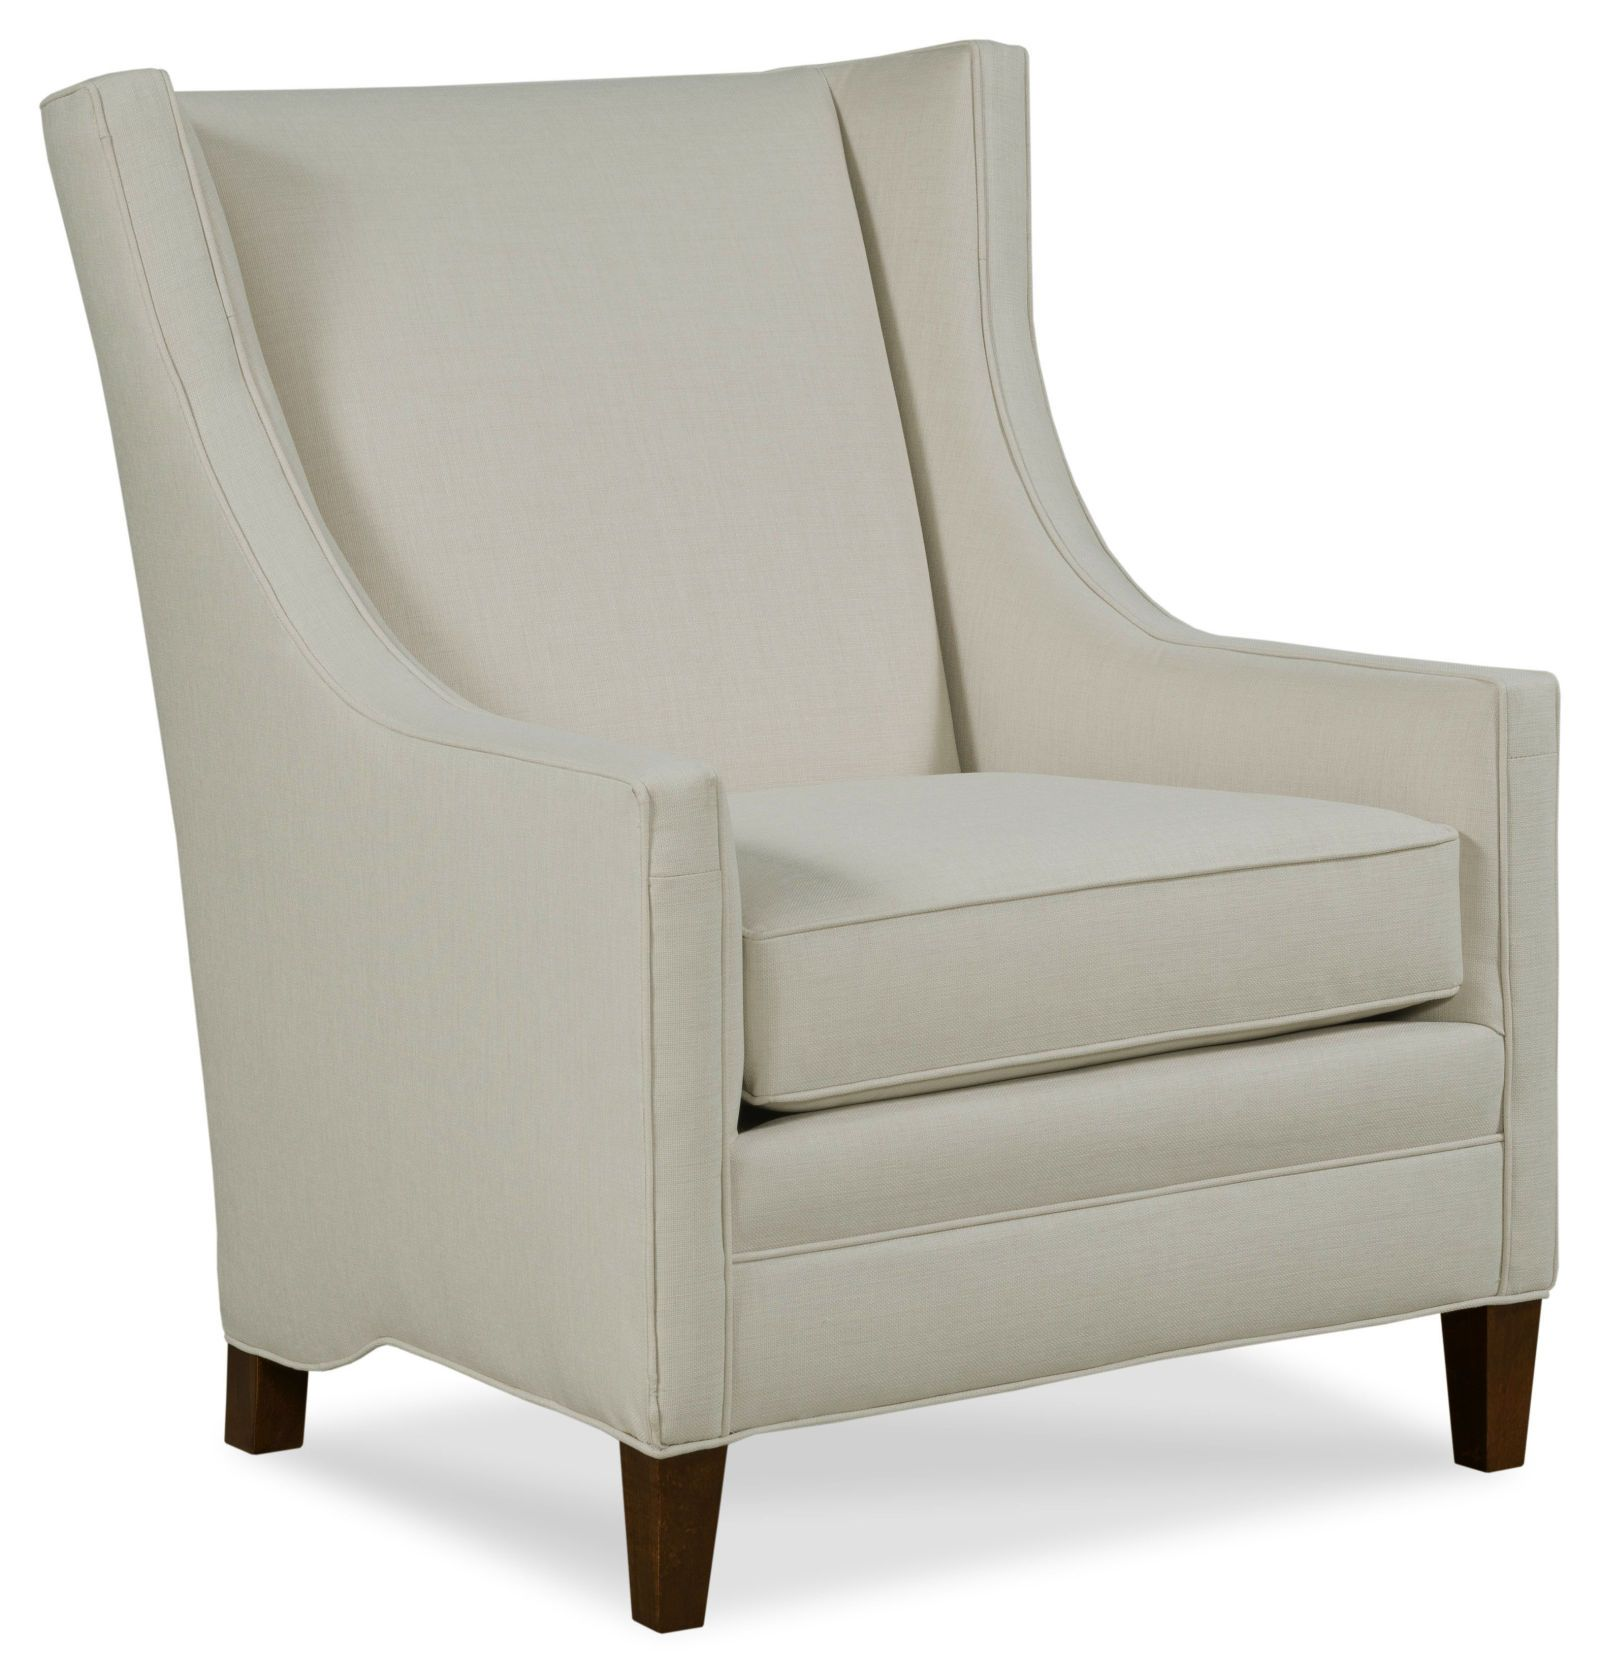 Fairfield Chairs Fairfield Senior Living S 7156 01 Ainsworth Lounge Chair